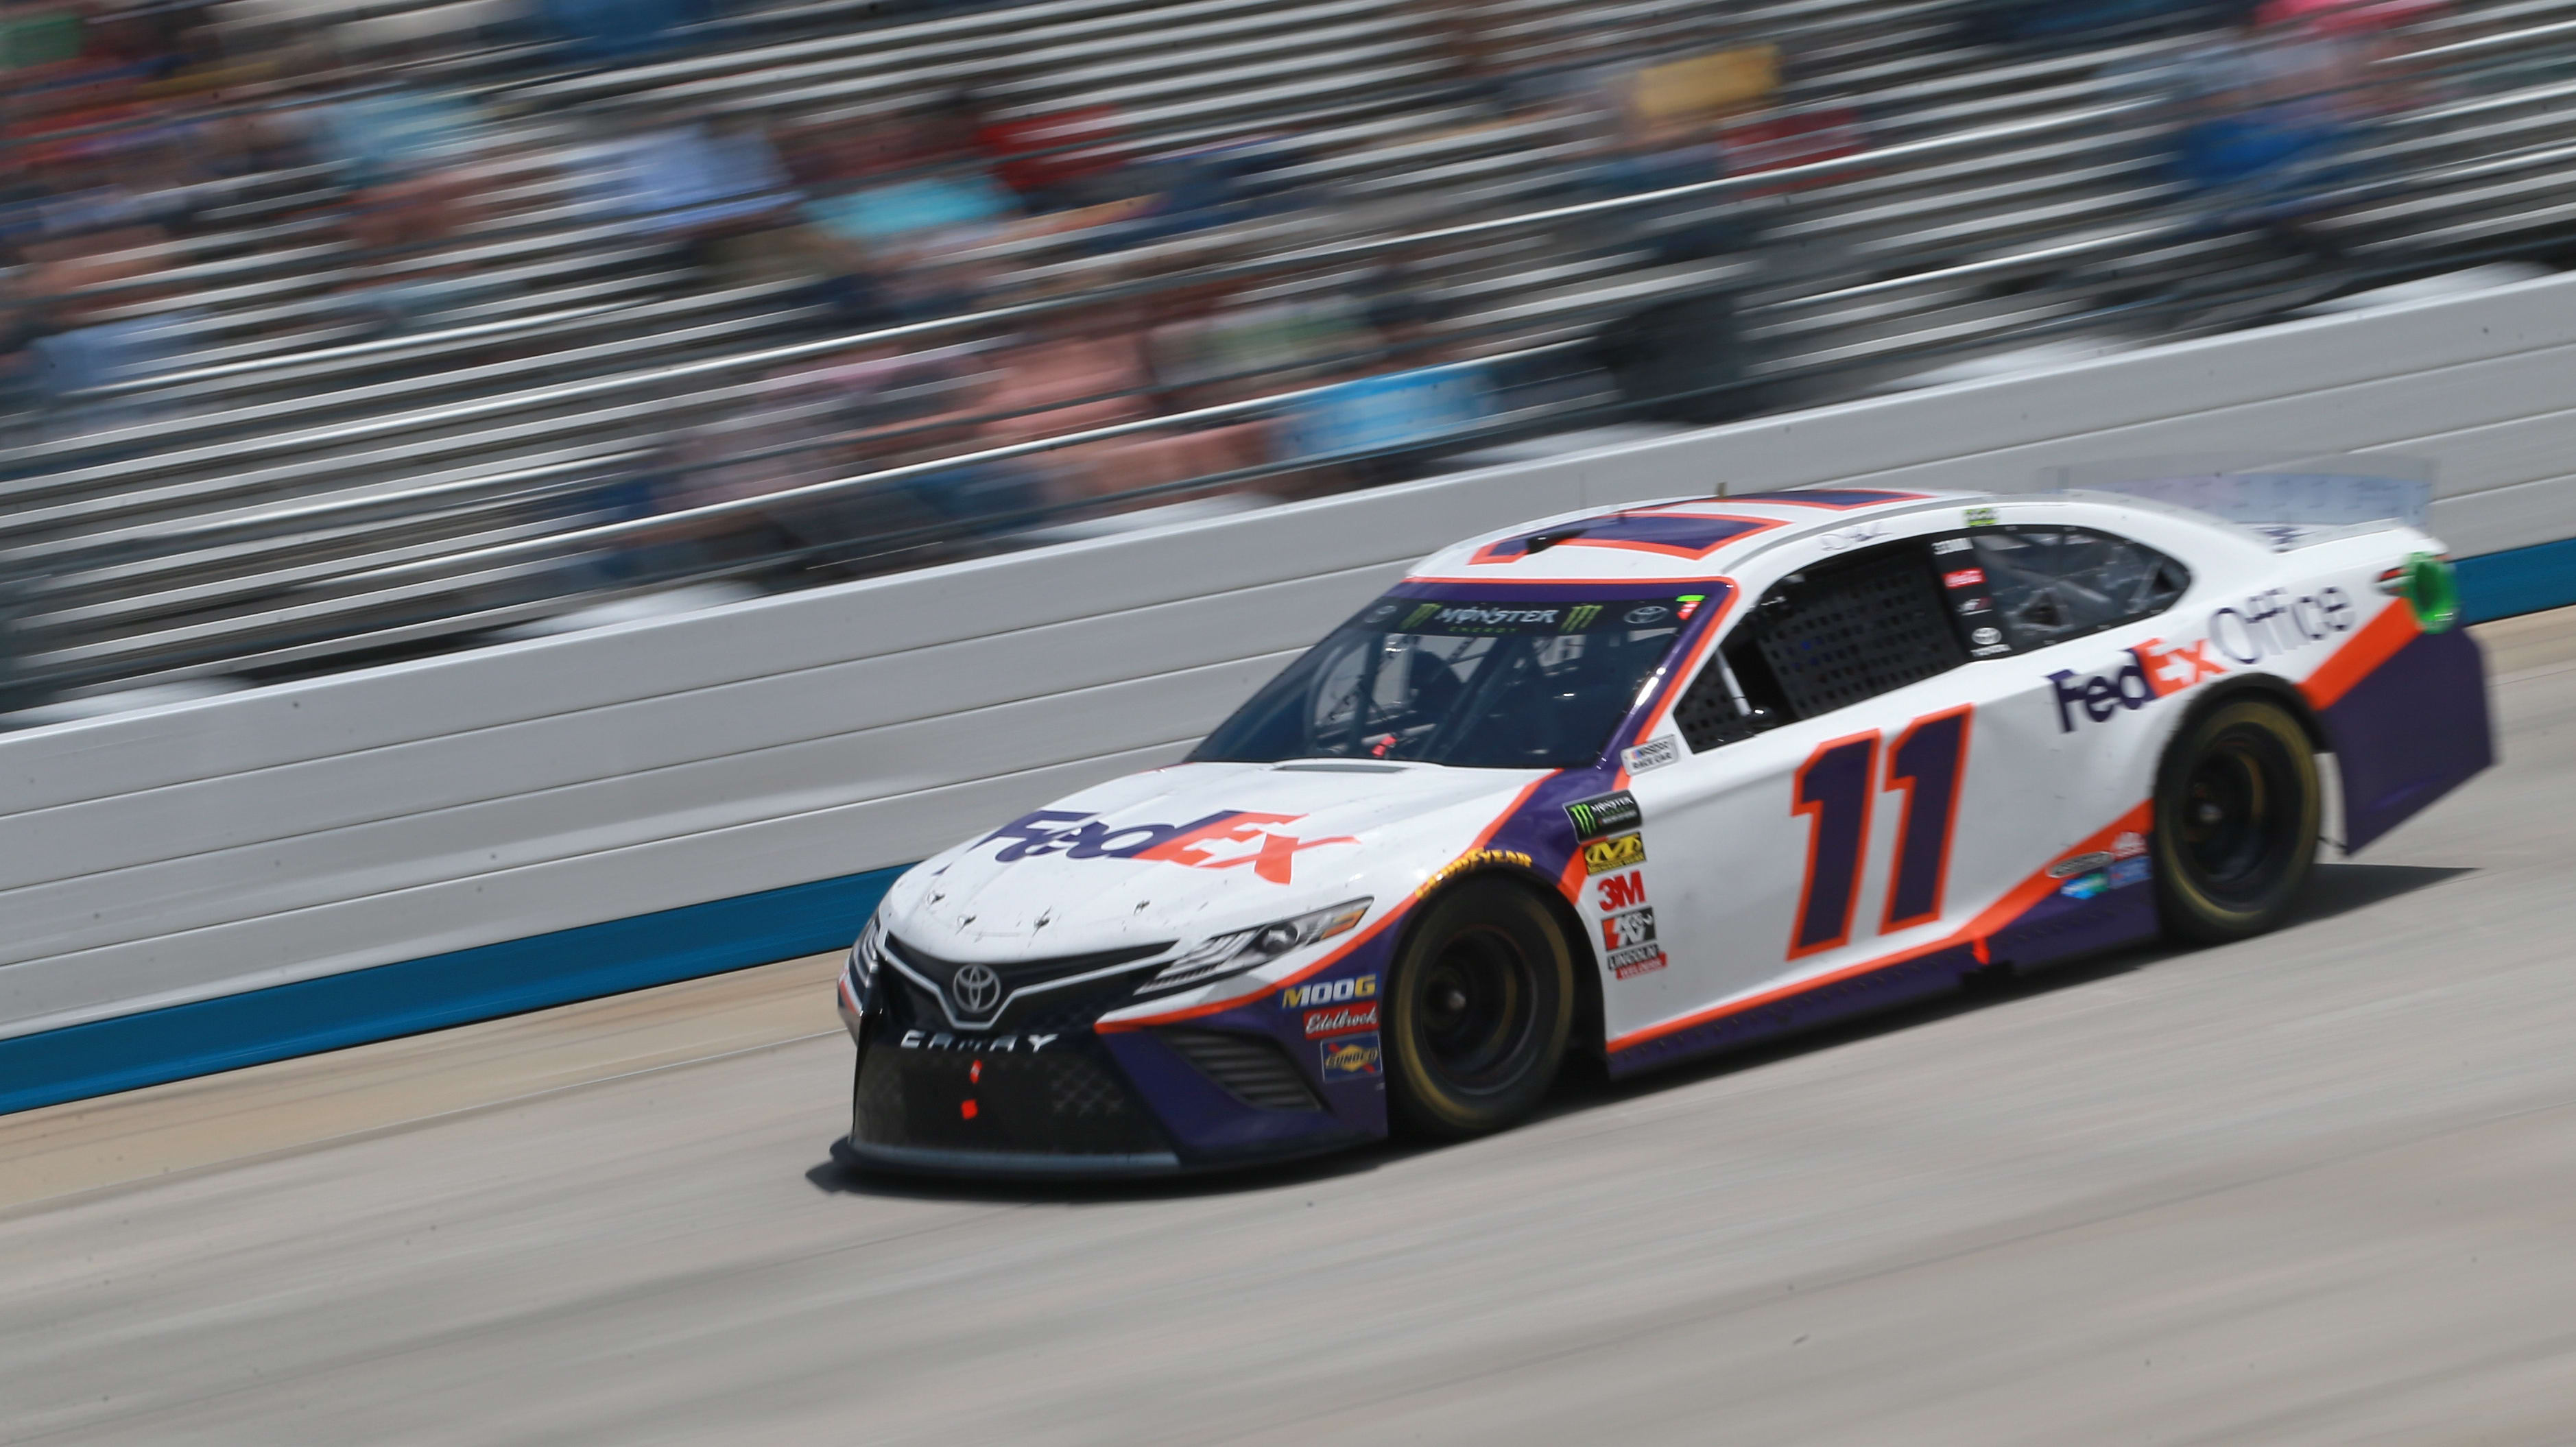 DOVER, DE - MAY 06:  Denny Hamlin, driver of the #11 FedEx Office Toyota, races during the Monster Energy NASCAR Cup Series Gander RV 400 at Dover International Speedway on May 6, 2019 in Dover, Delaware.  (Photo by Matt Sullivan/Getty Images)